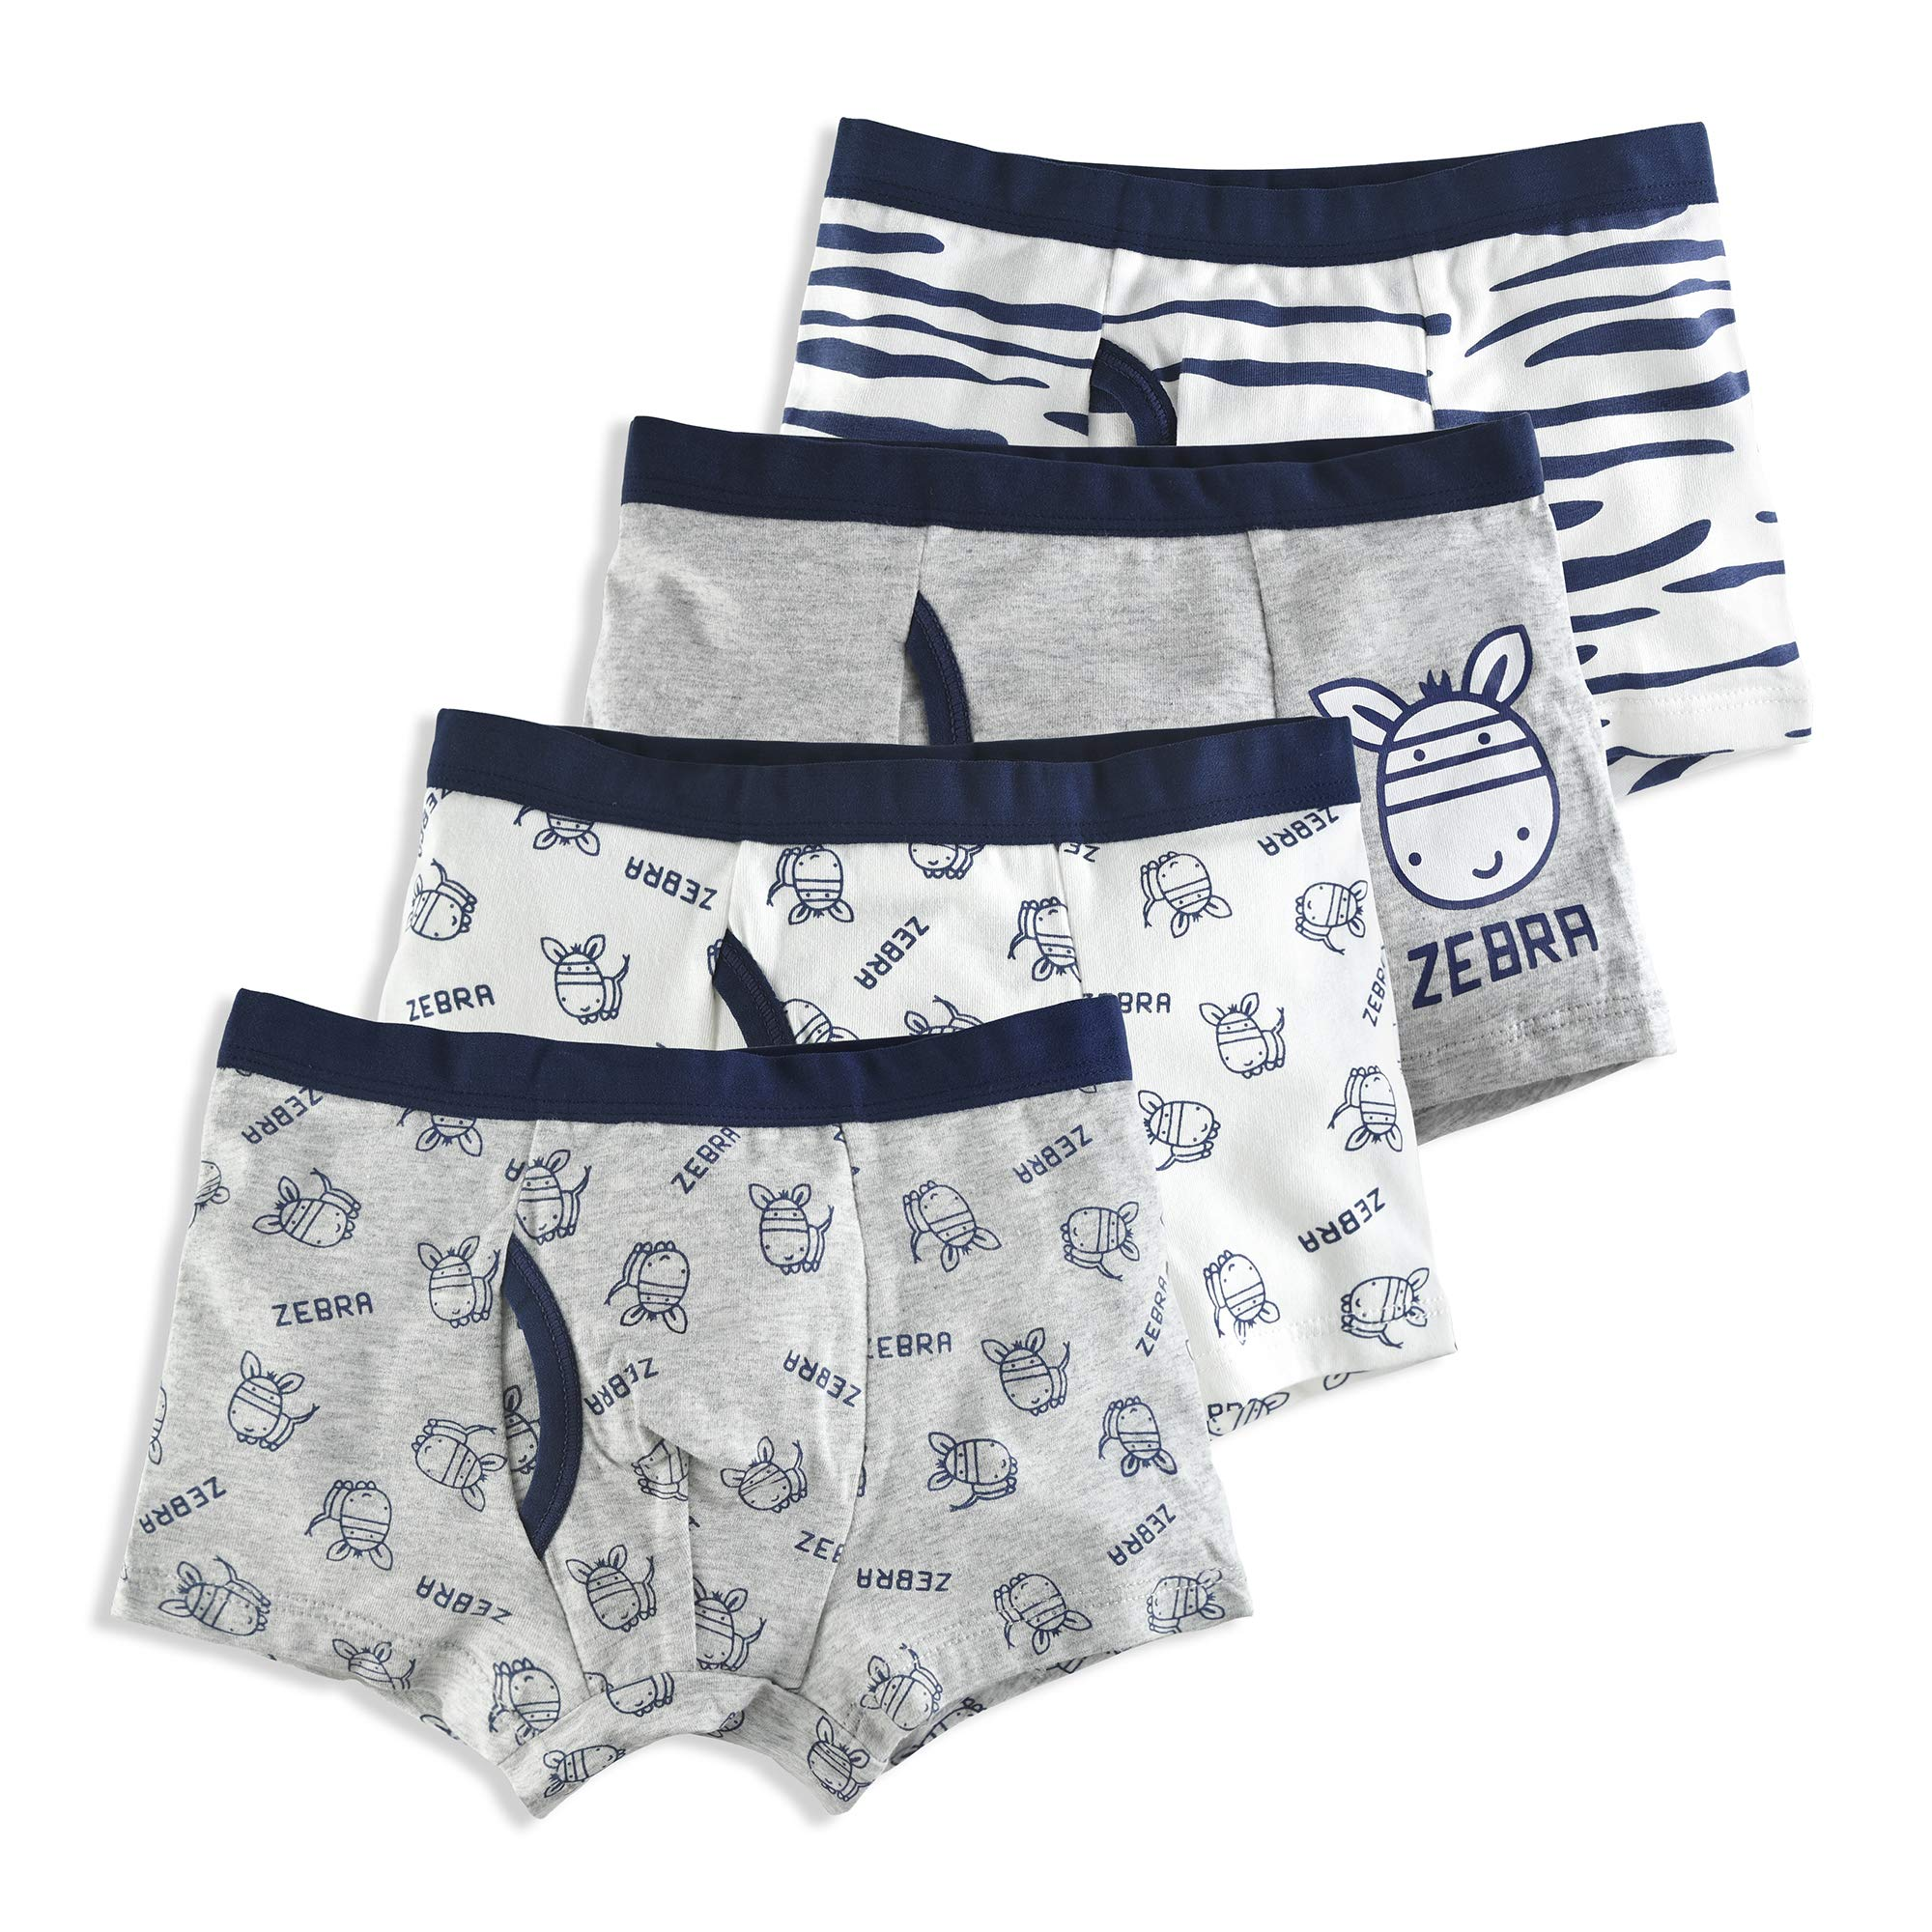 slaixiu Soft Cotton Kids Underwear Cartoon Boys Boxer Briefs 4-Pack (UW75-No.9-110)